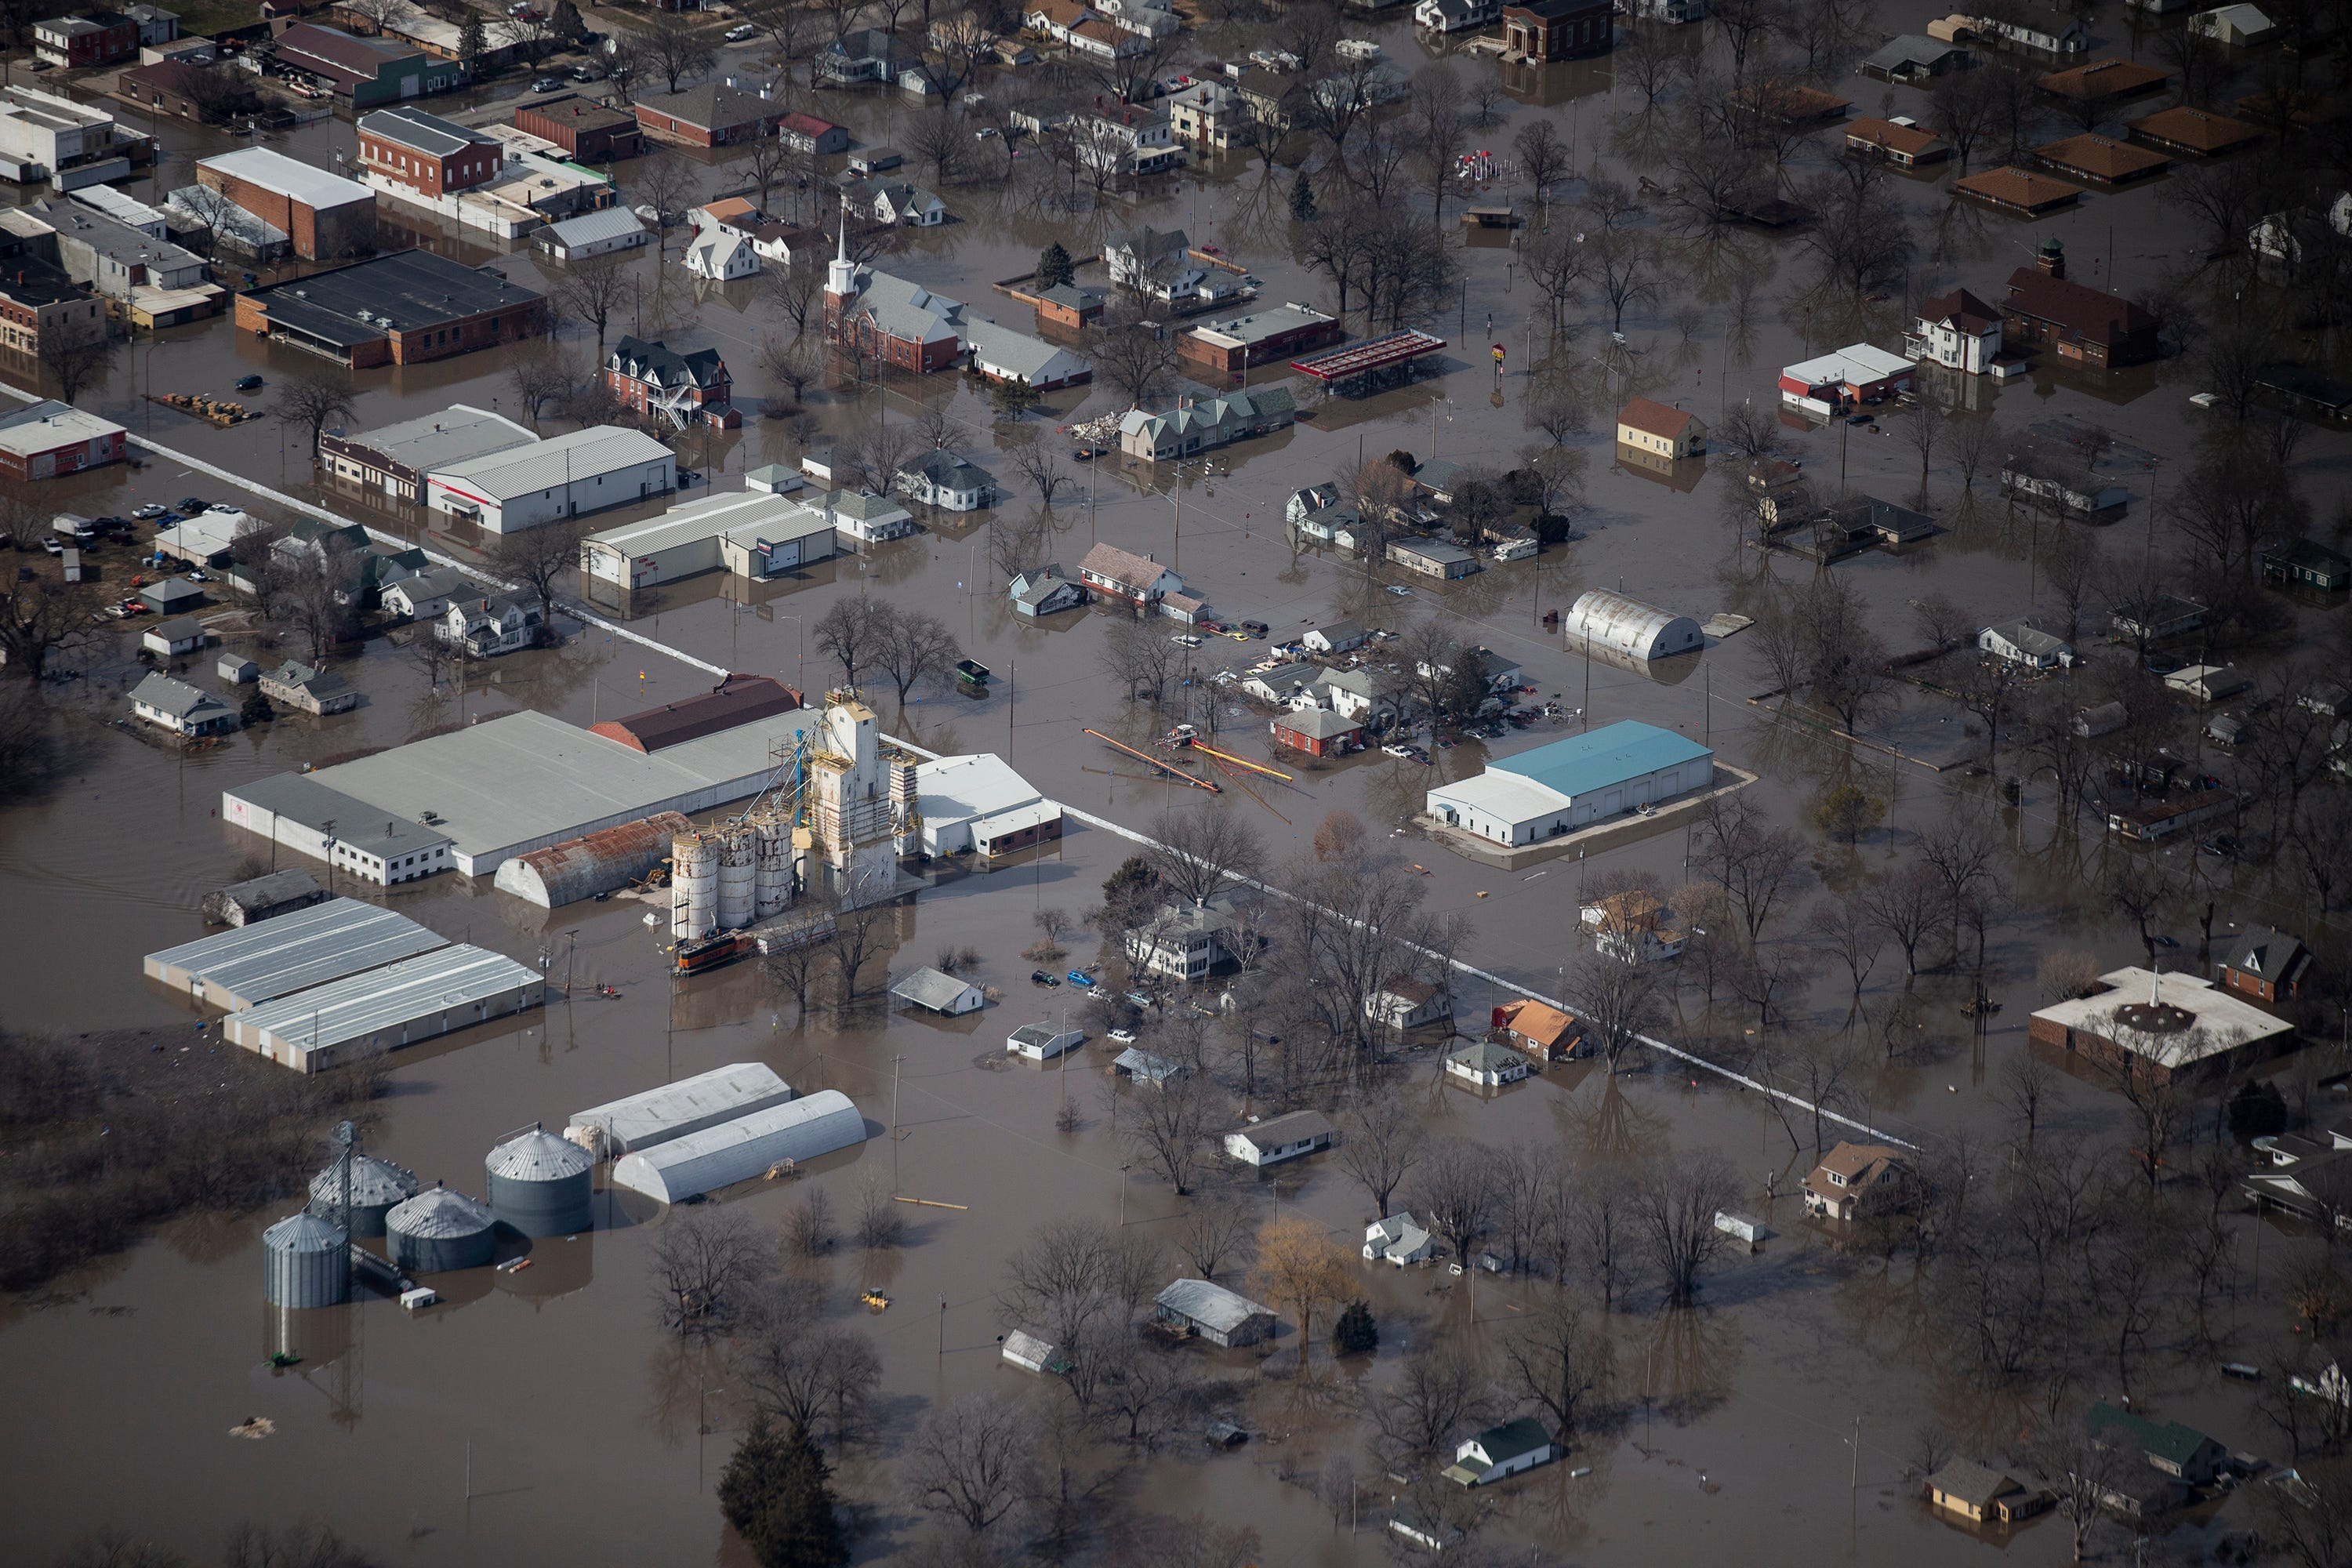 Floodwater from the Missouri River inundates an Iowa town on Monday.